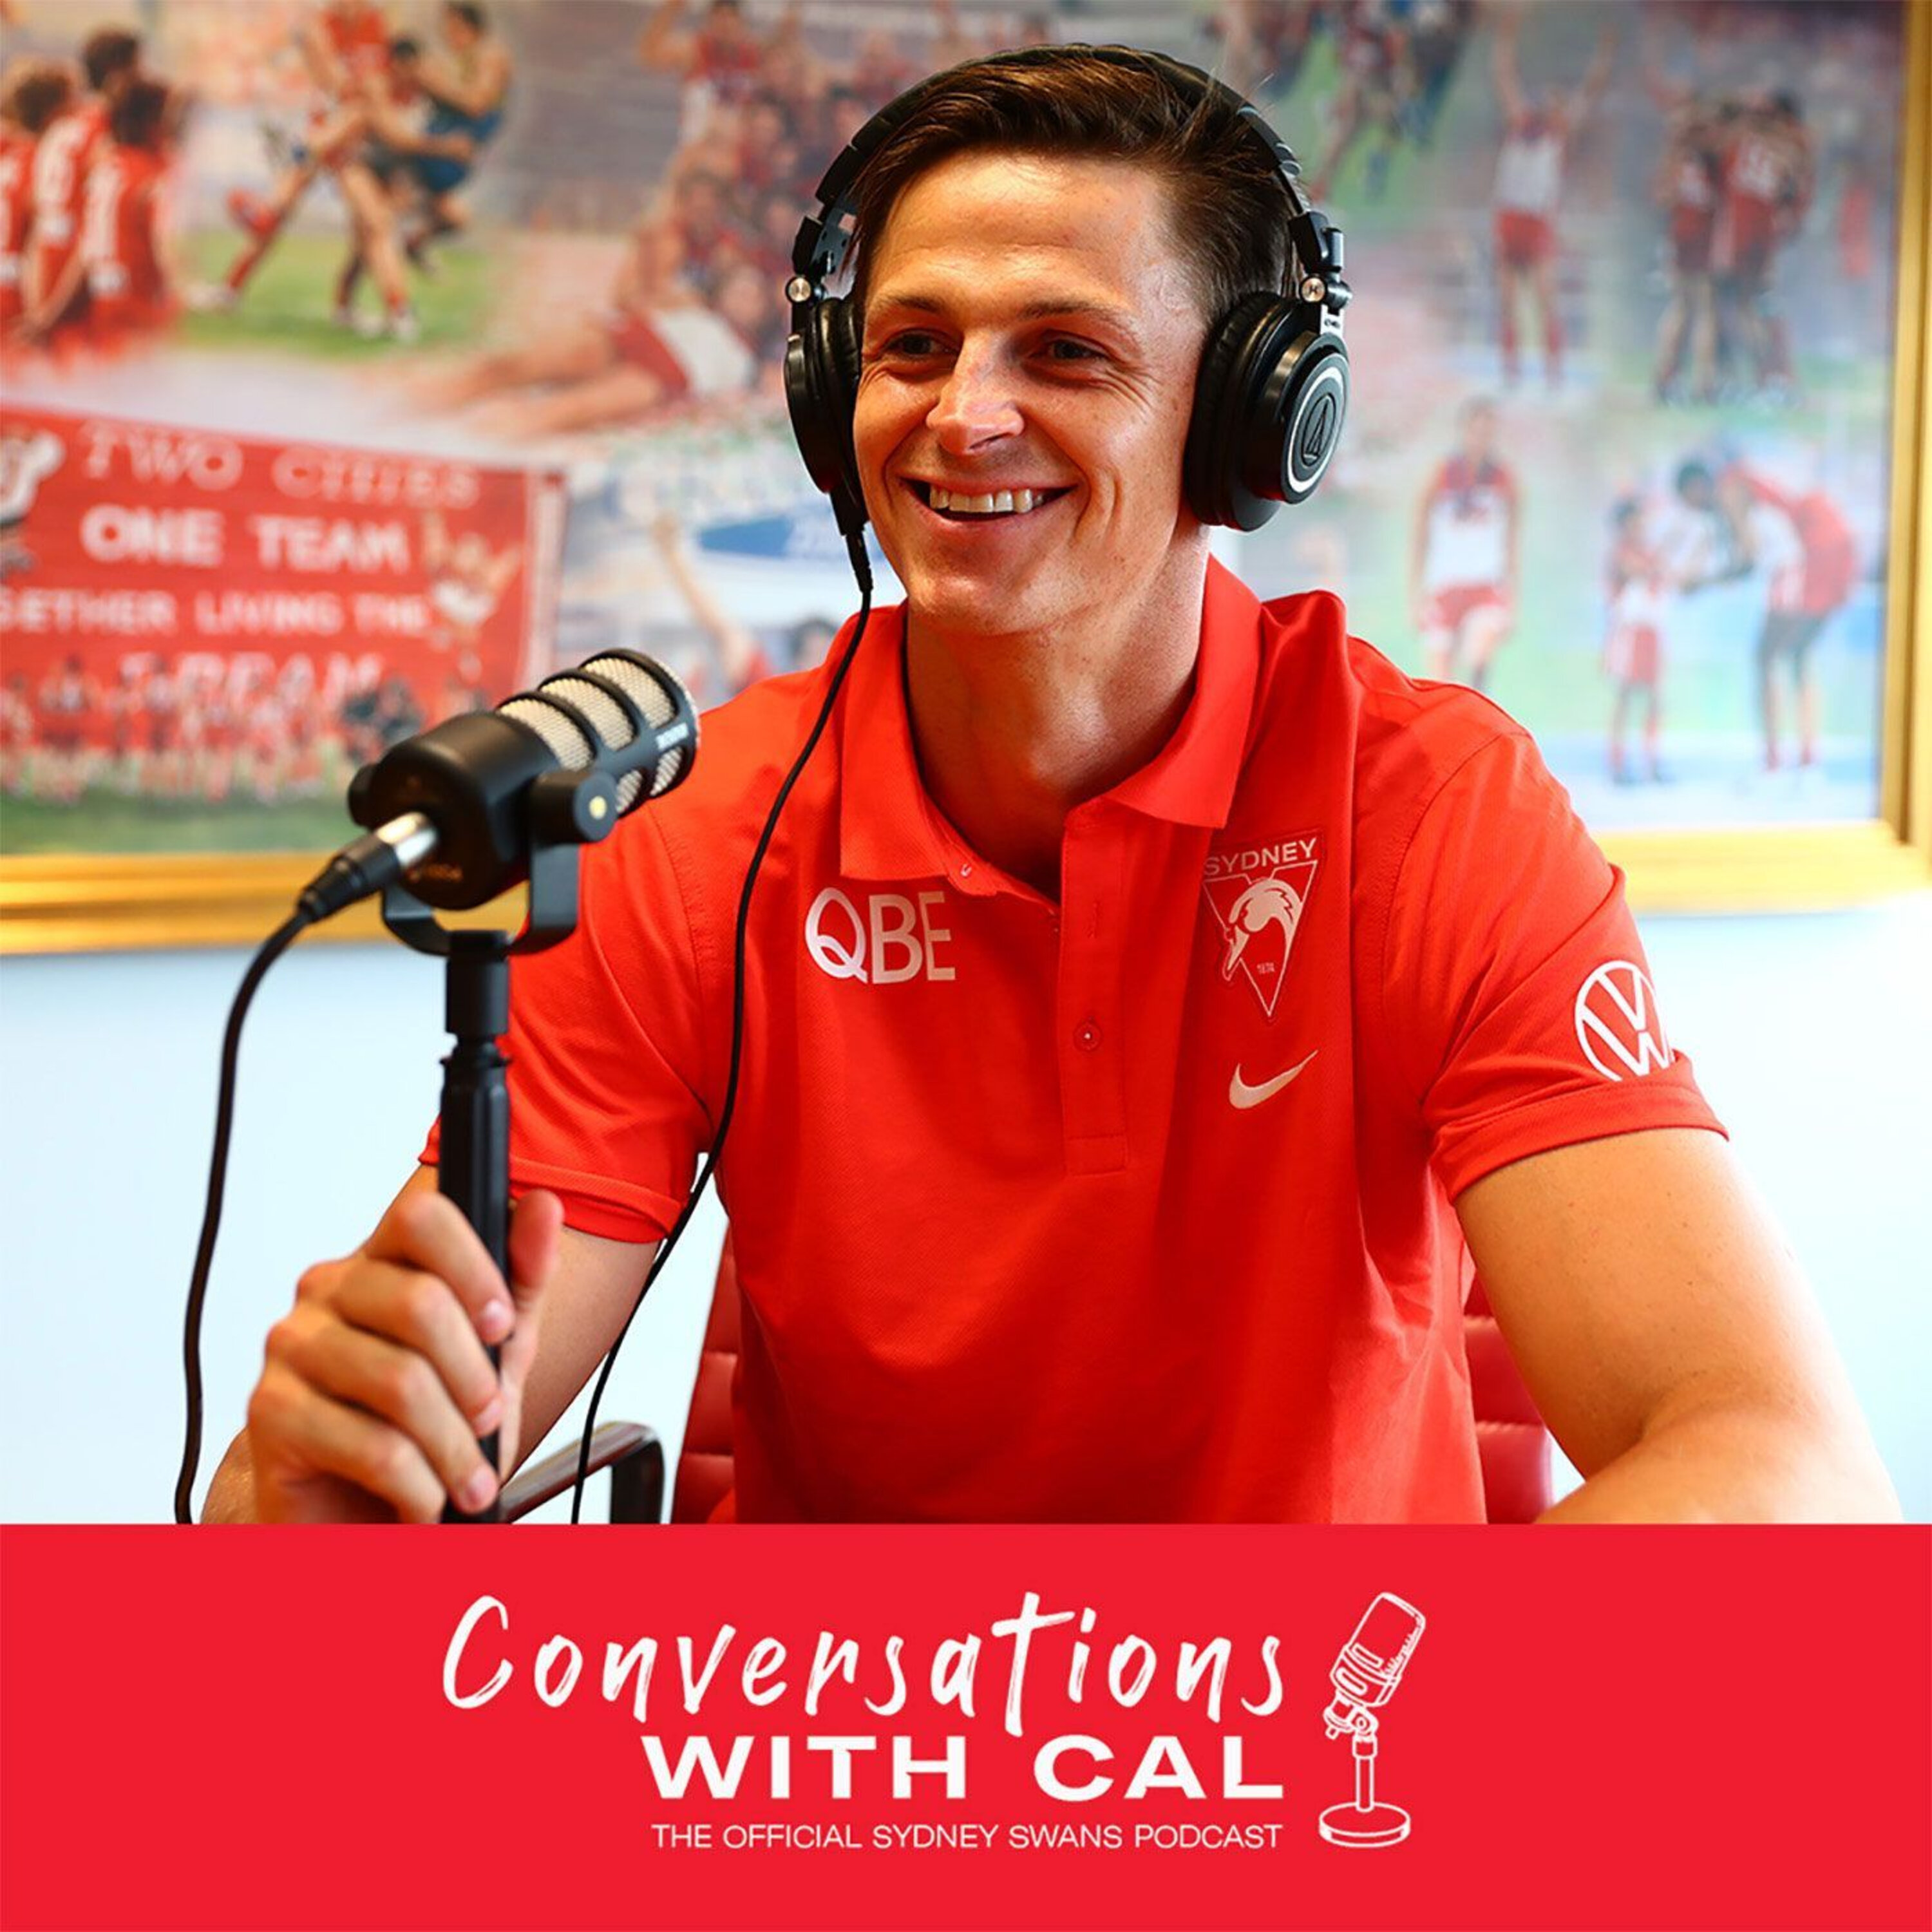 Conversations with Cal - George's XI